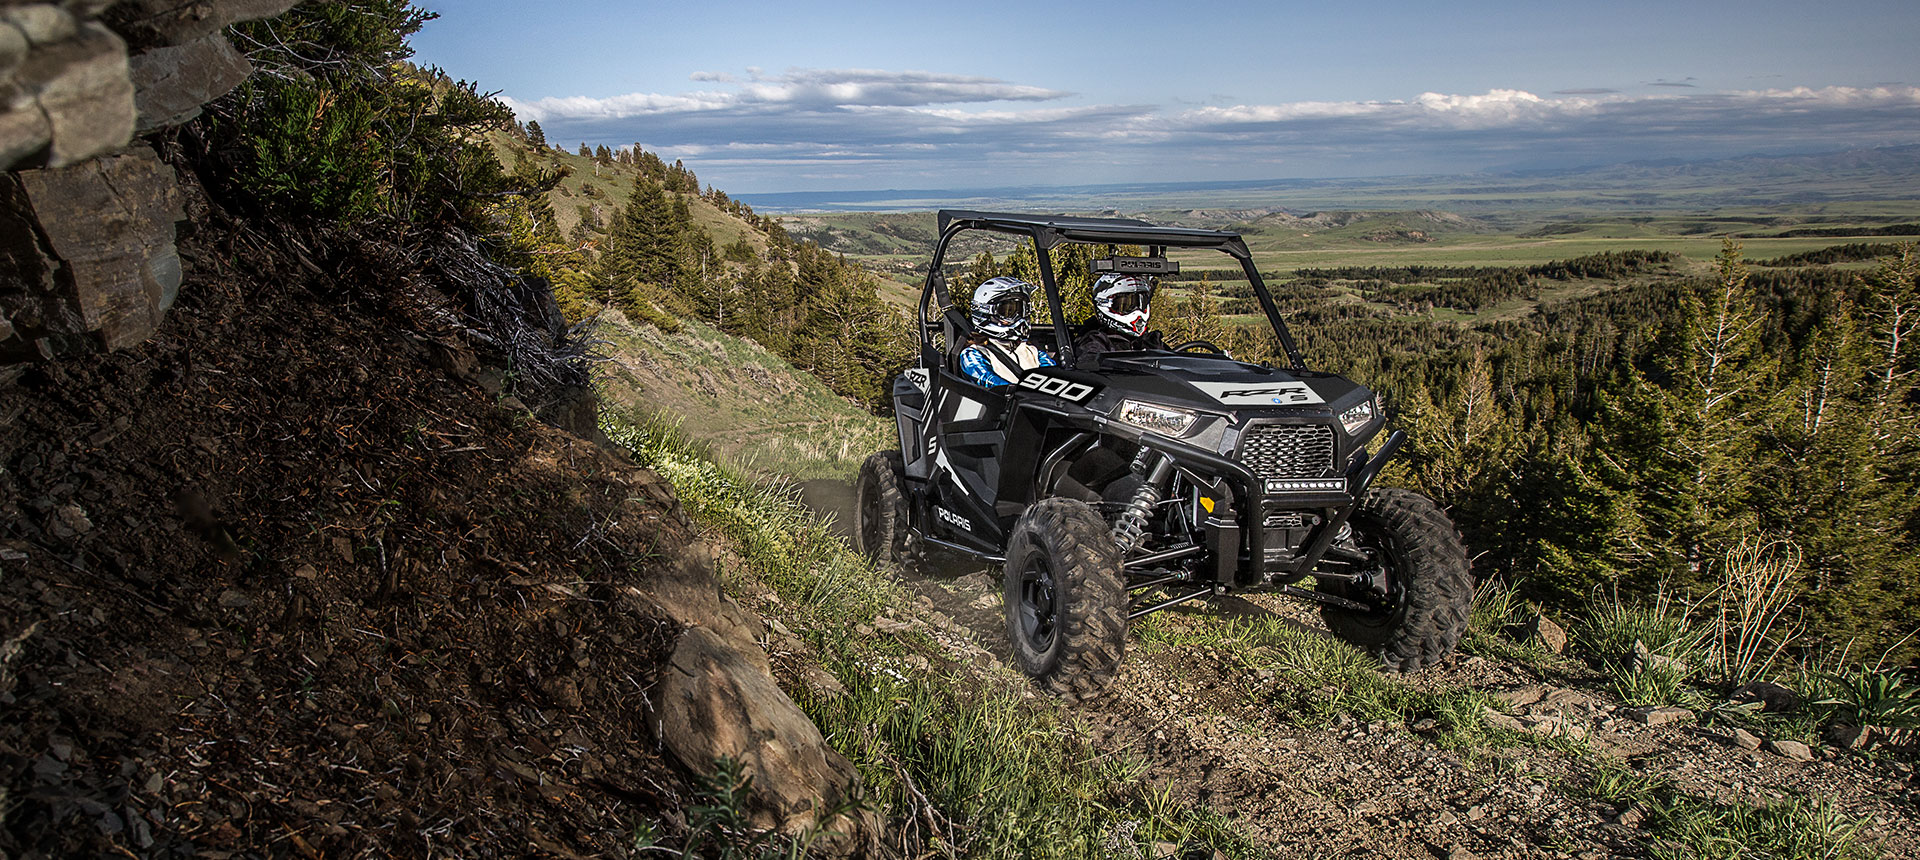 2019 Polaris RZR S 900 EPS in Clovis, New Mexico